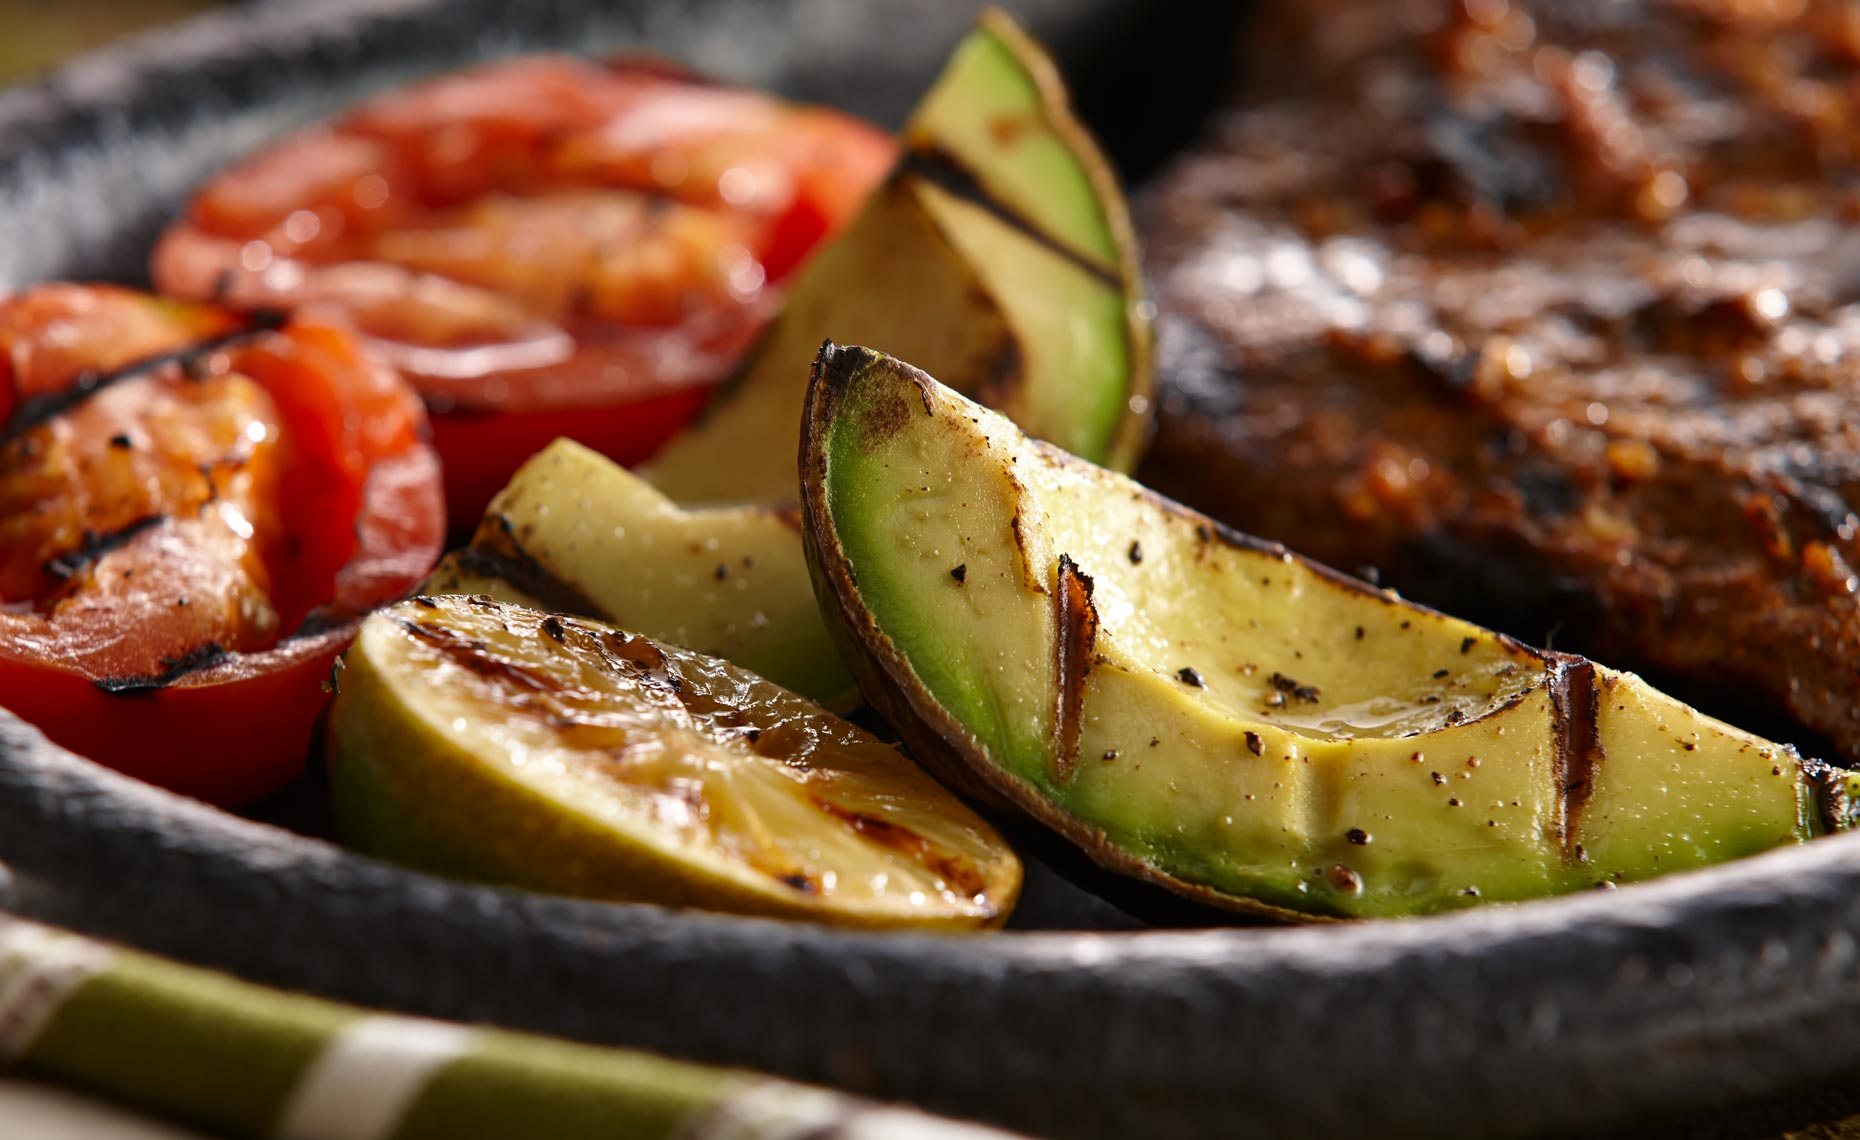 baltimore-food-photographers-grilled-avocado-tomato-04